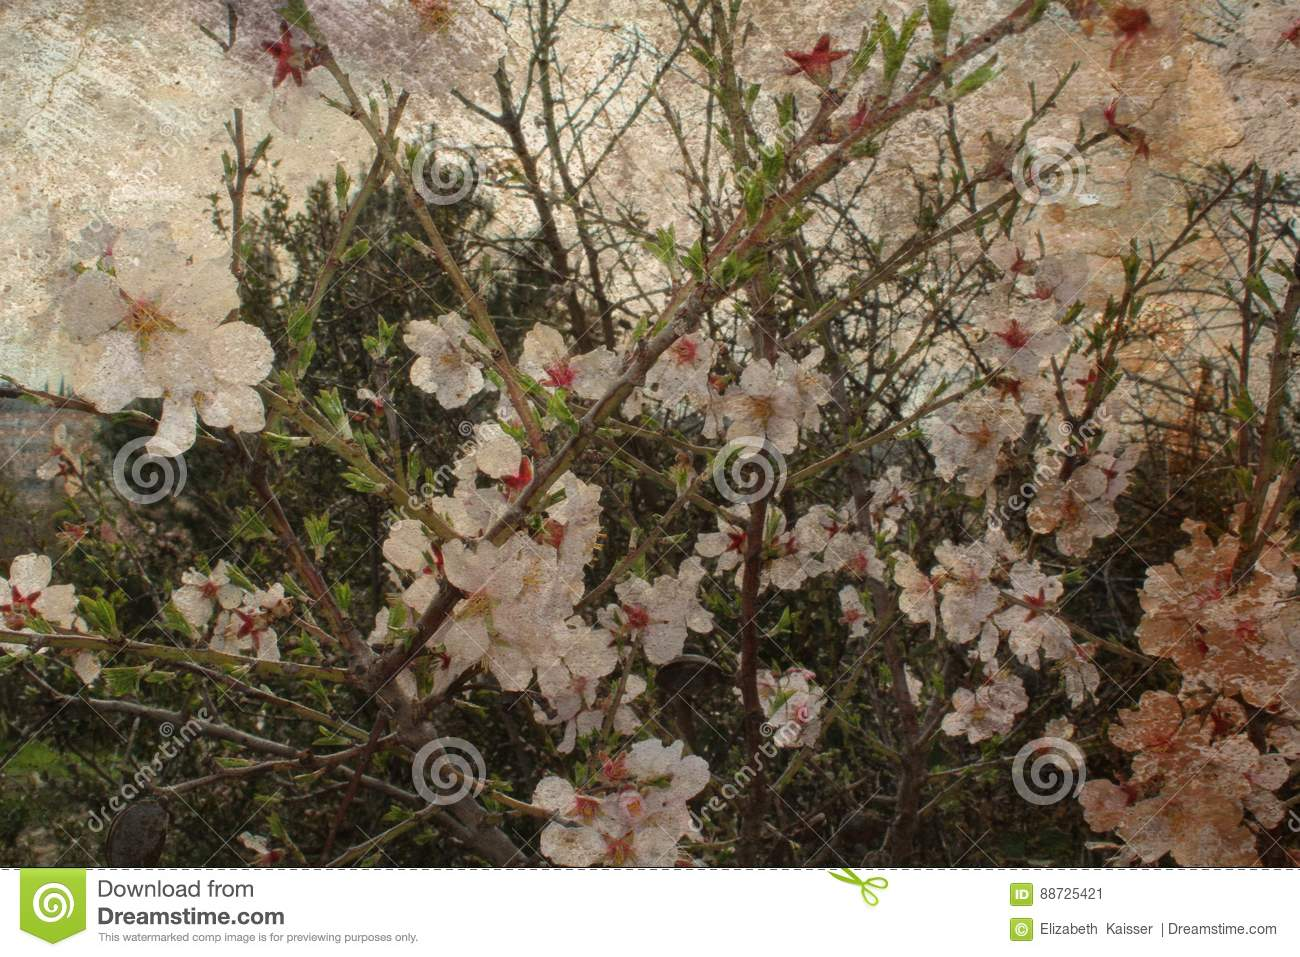 Tree in blossom, by Elize Kaisser art photographer